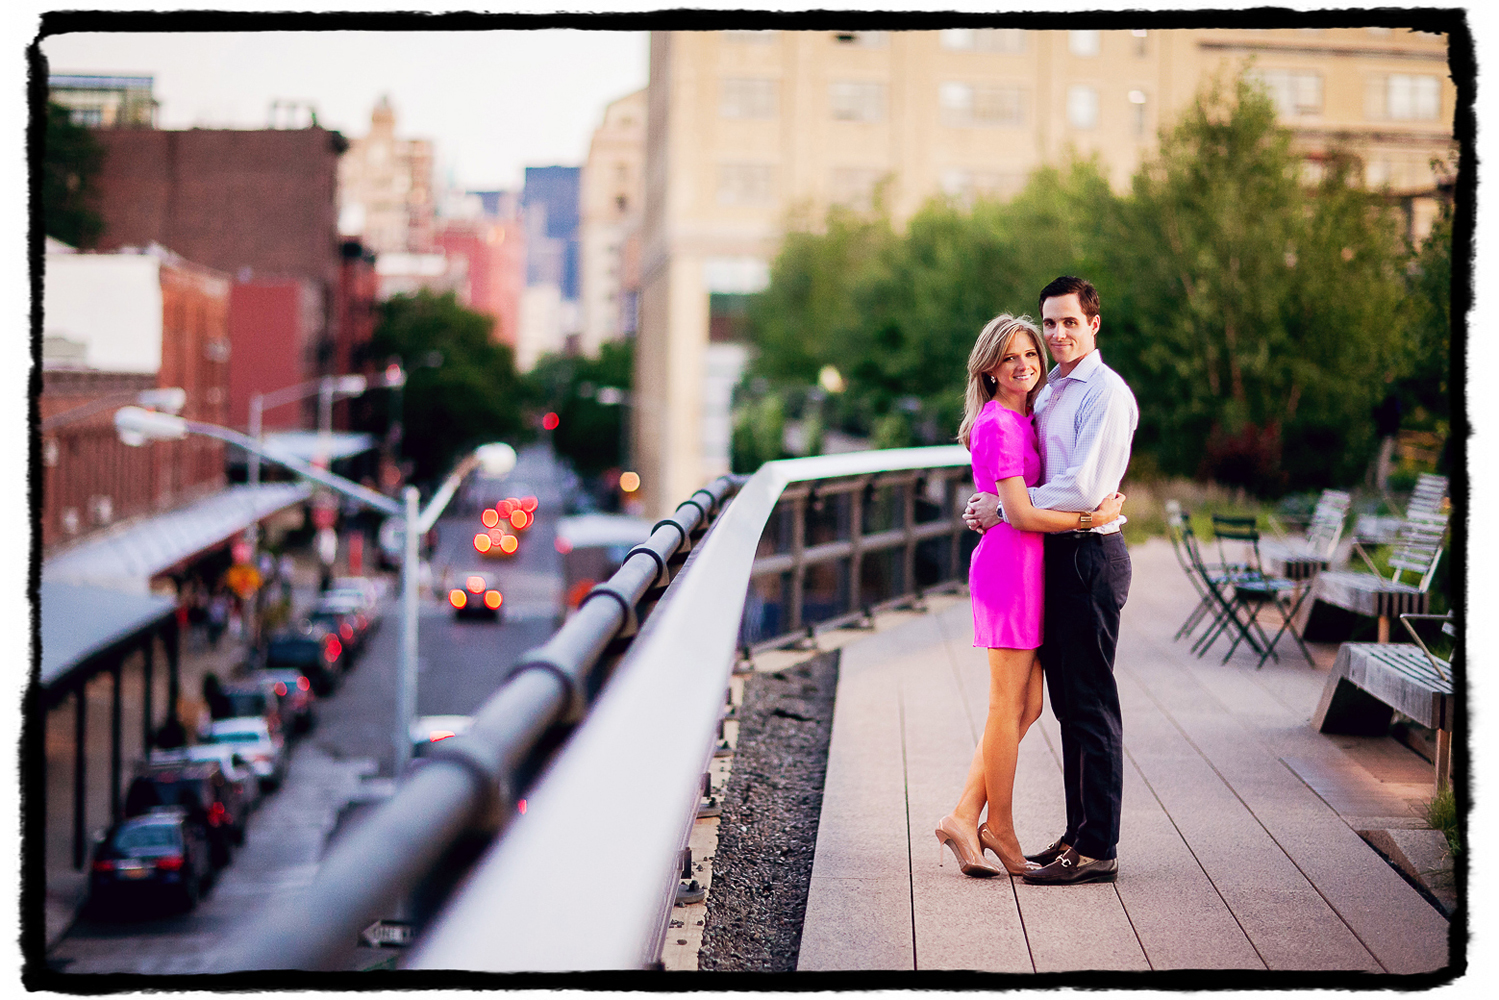 Engagement Portrait: Devin & Mike pose for an extra special photograph up on the High Line.  You can see their building in the distance behind them!